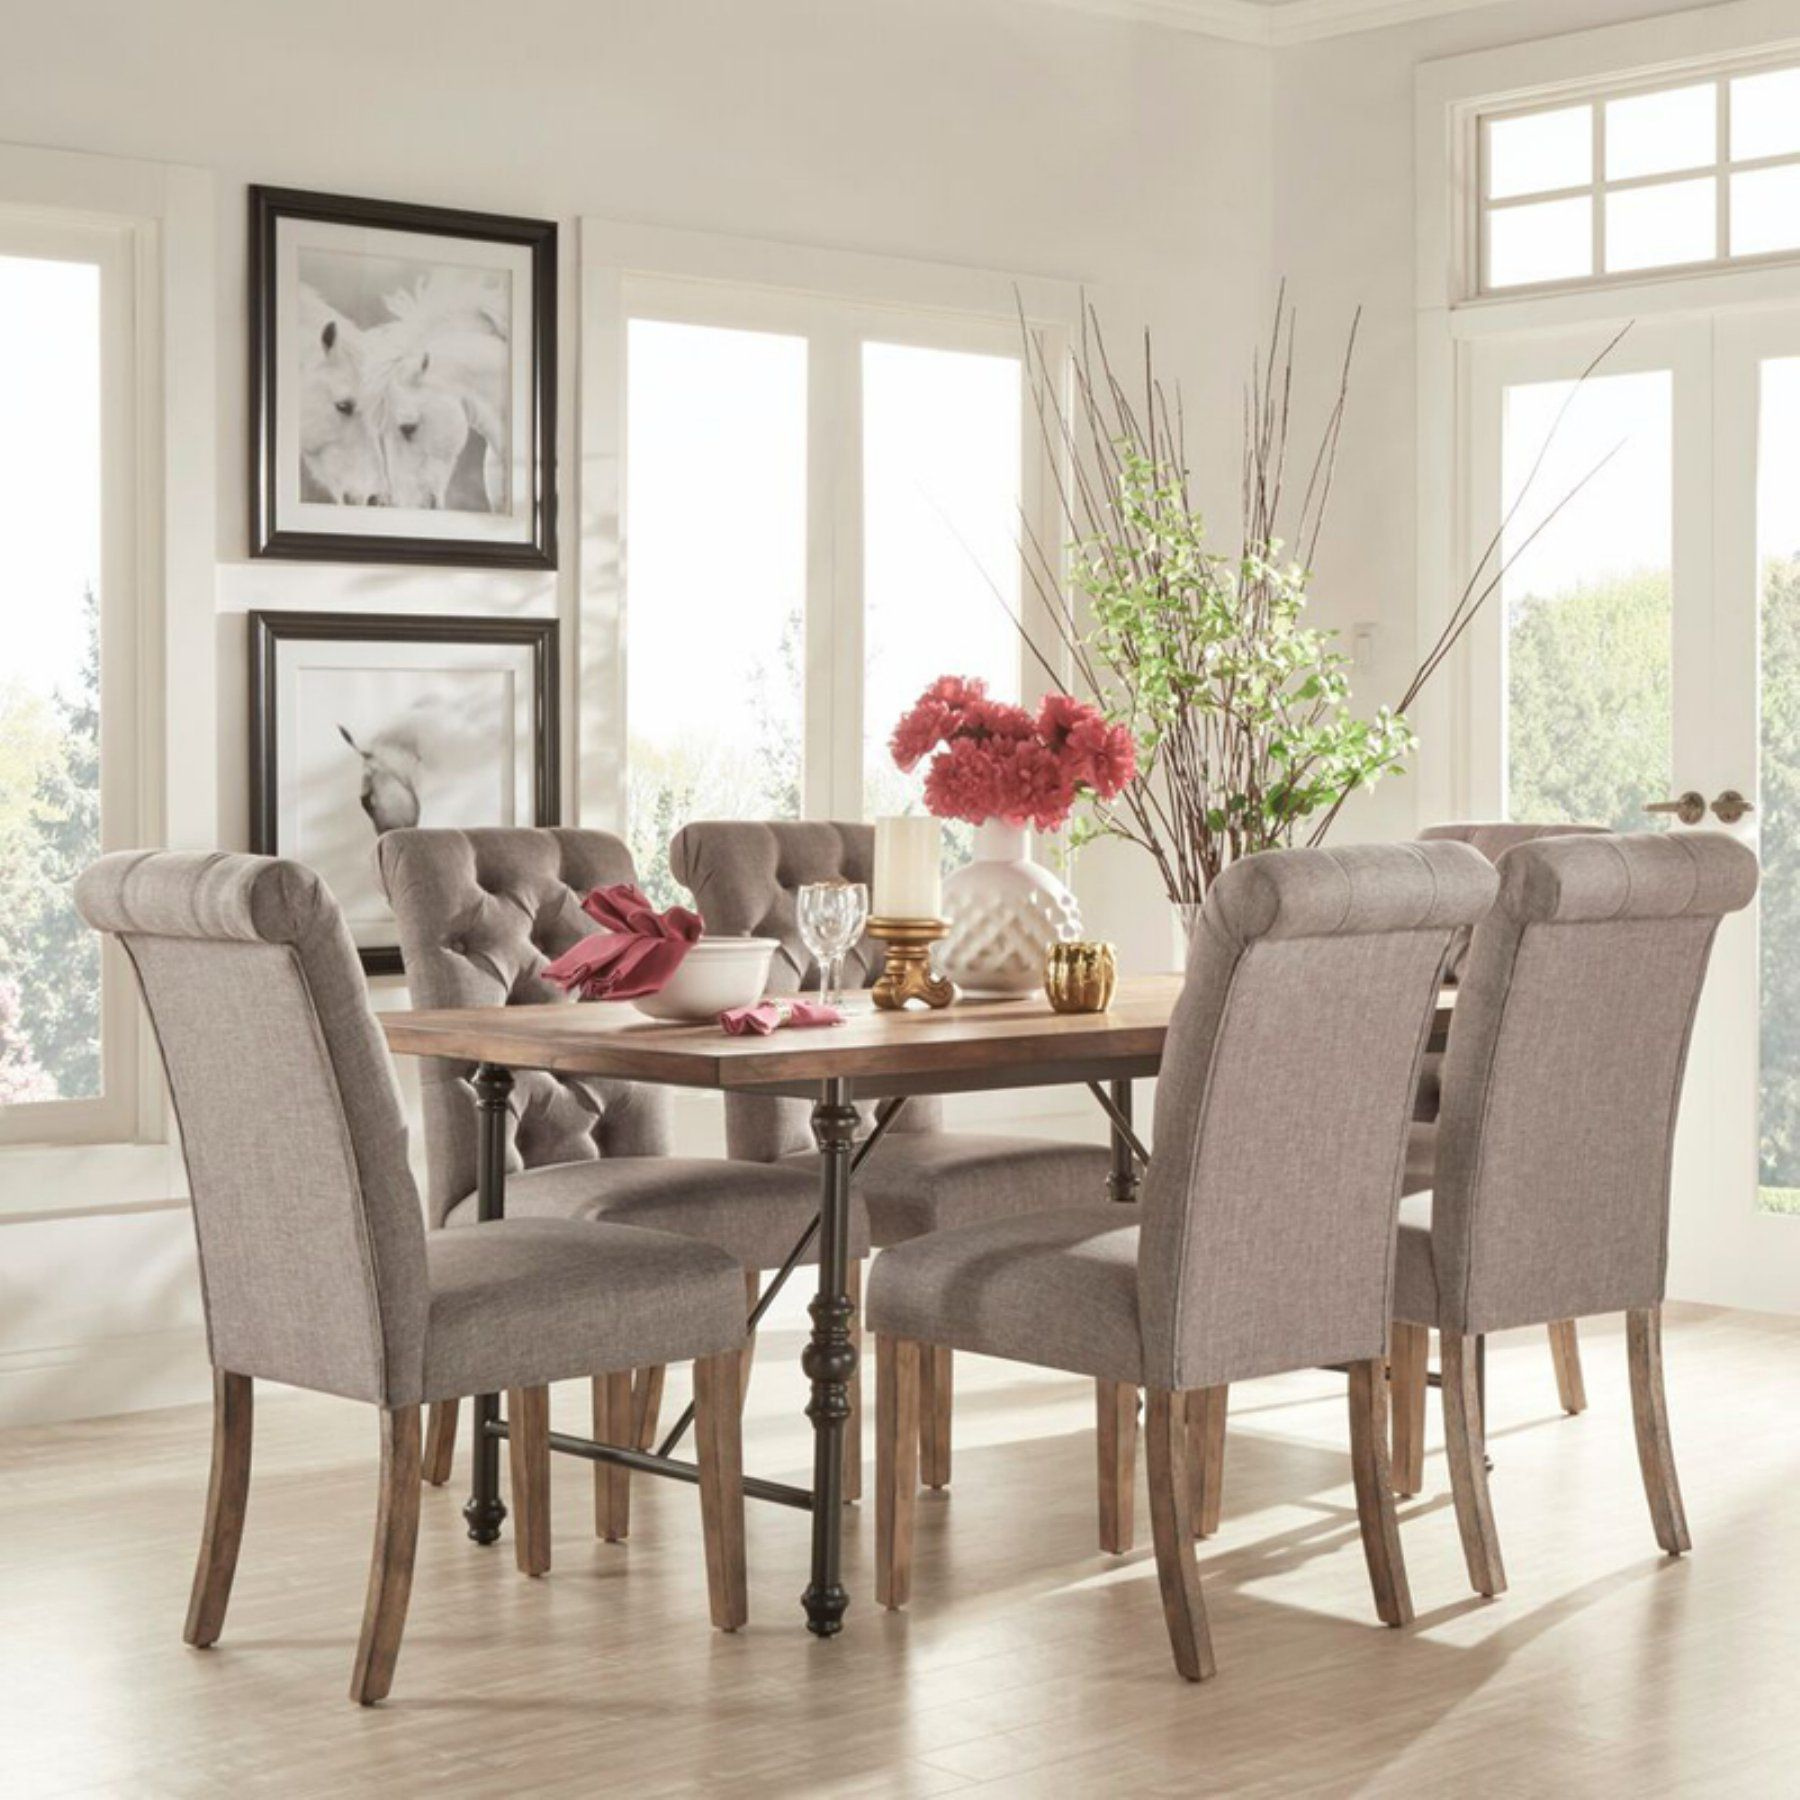 Homelegance 7 Piece Industrial Dining Set with